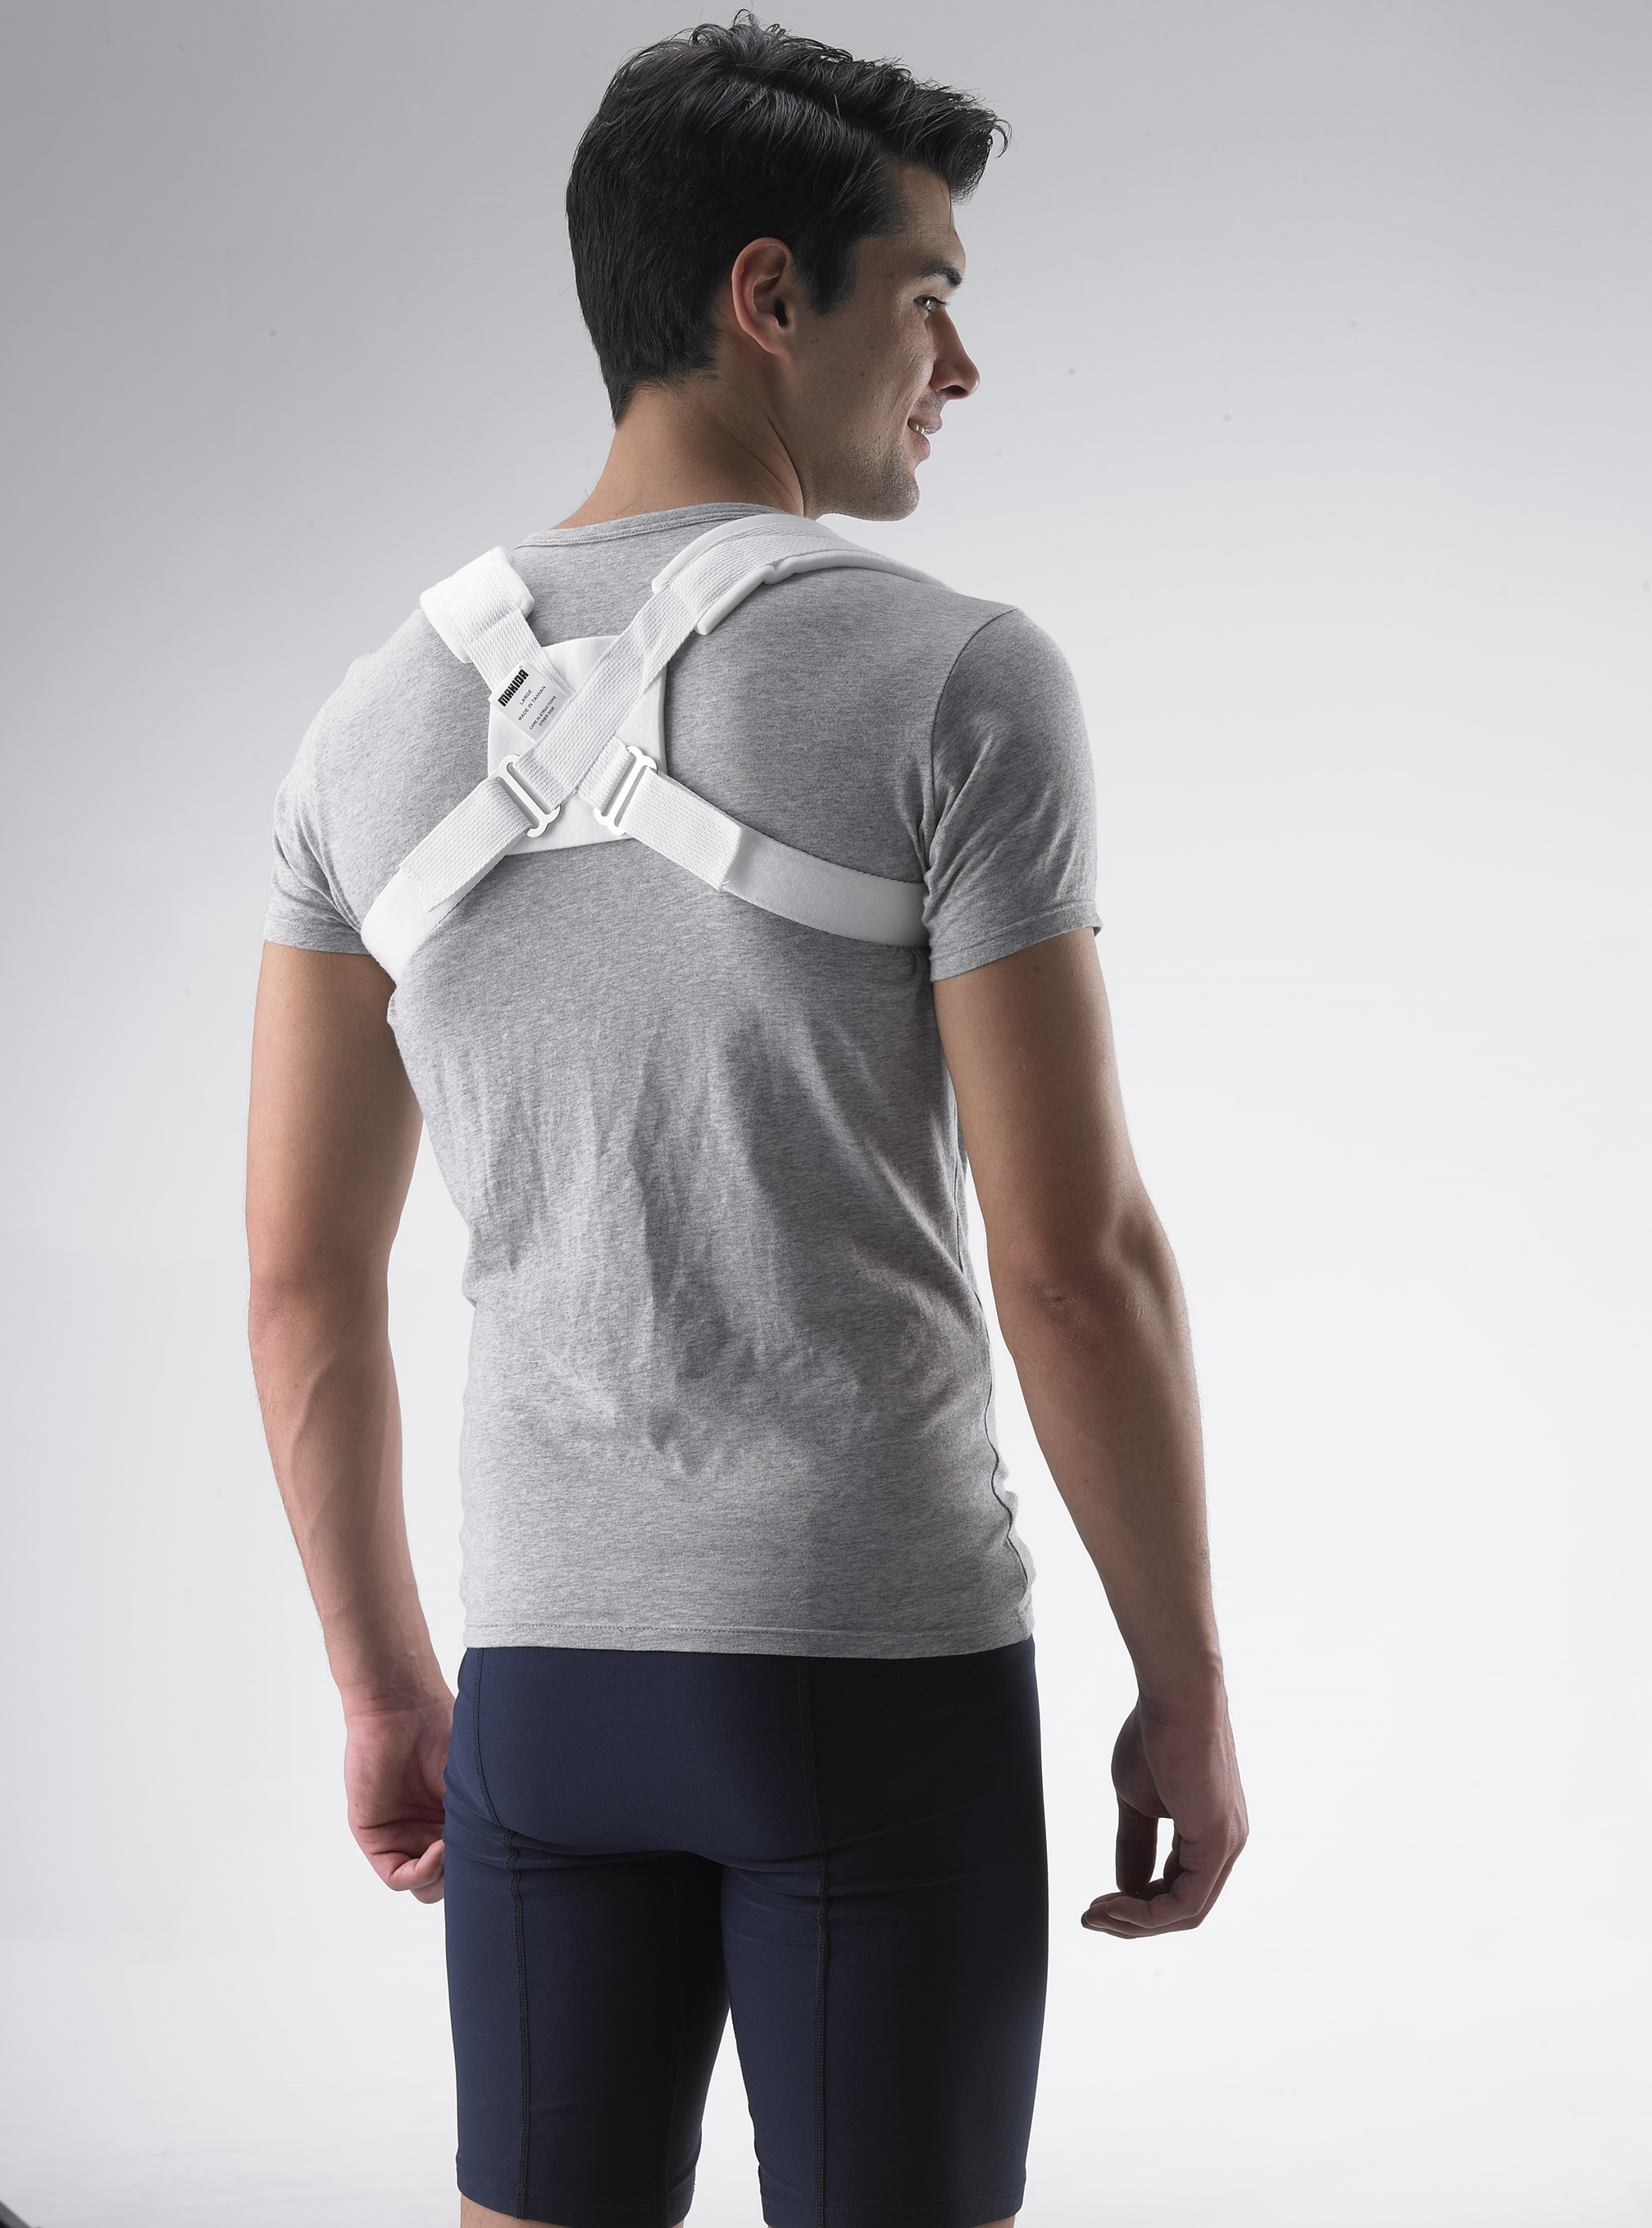 CLAVICLE SUPPORT (HCLT100)